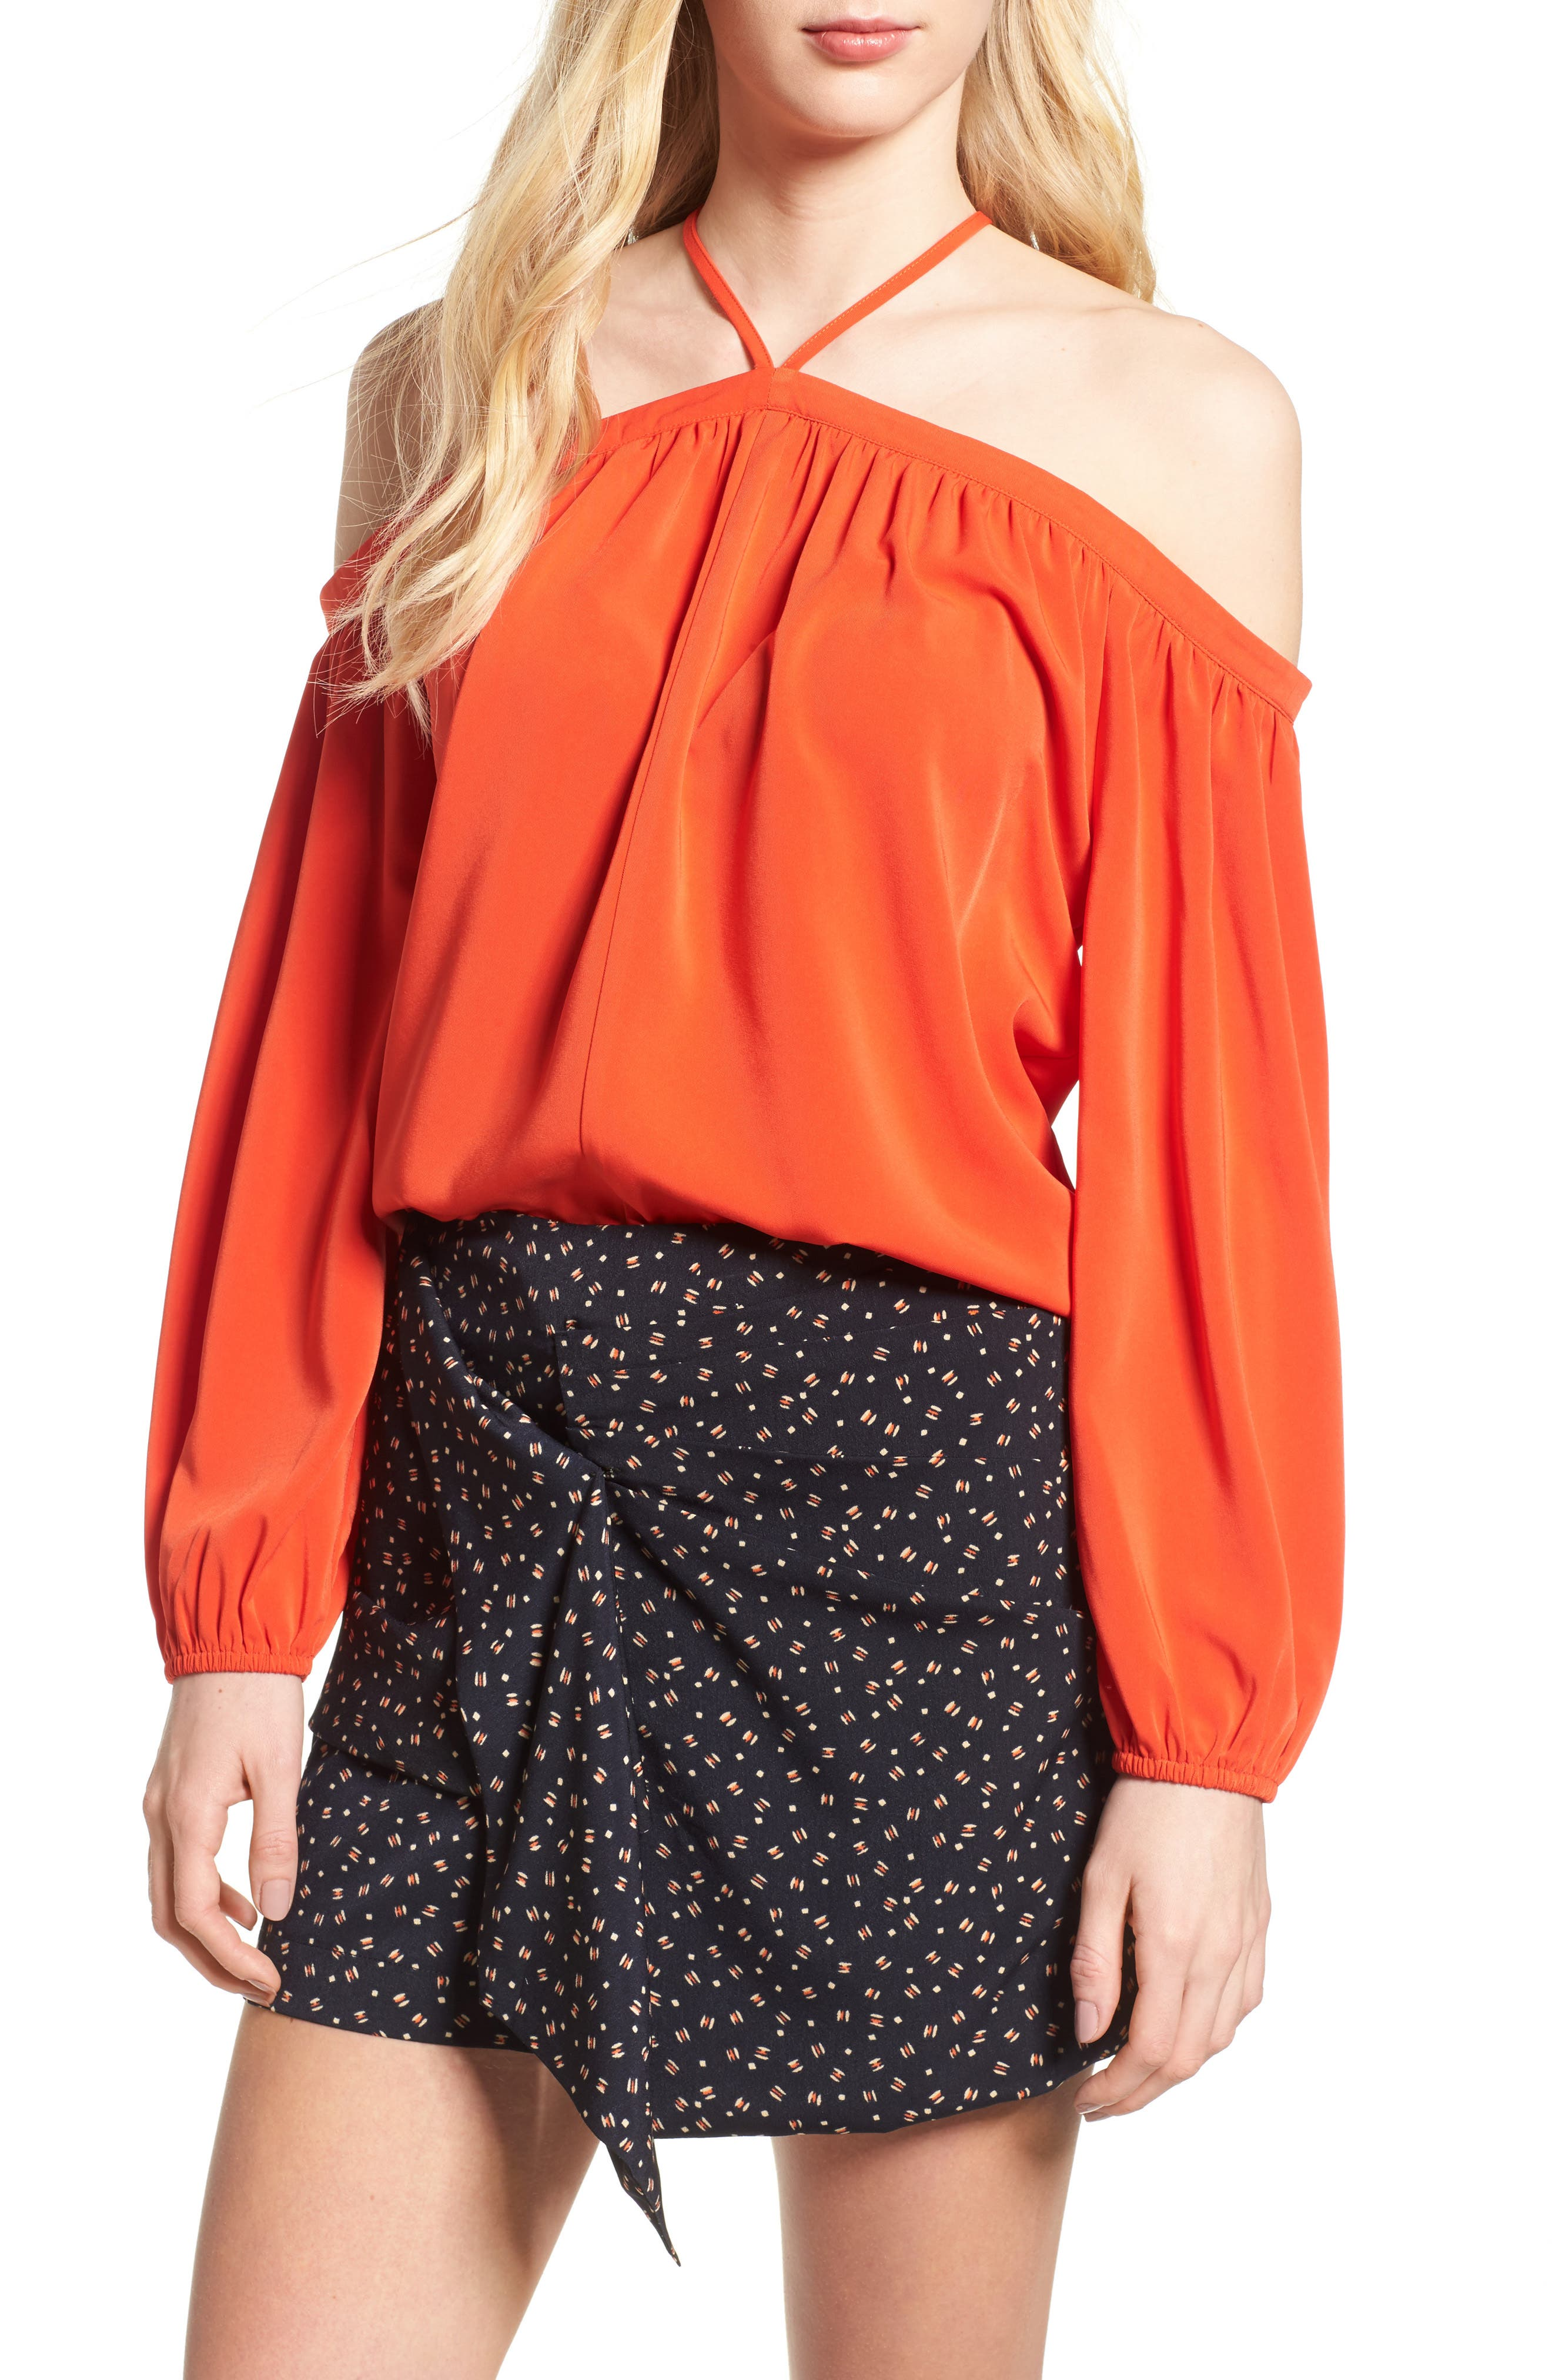 Bishop + Young Ana Off the Shoulder Top,                         Main,                         color, Poppy Pop